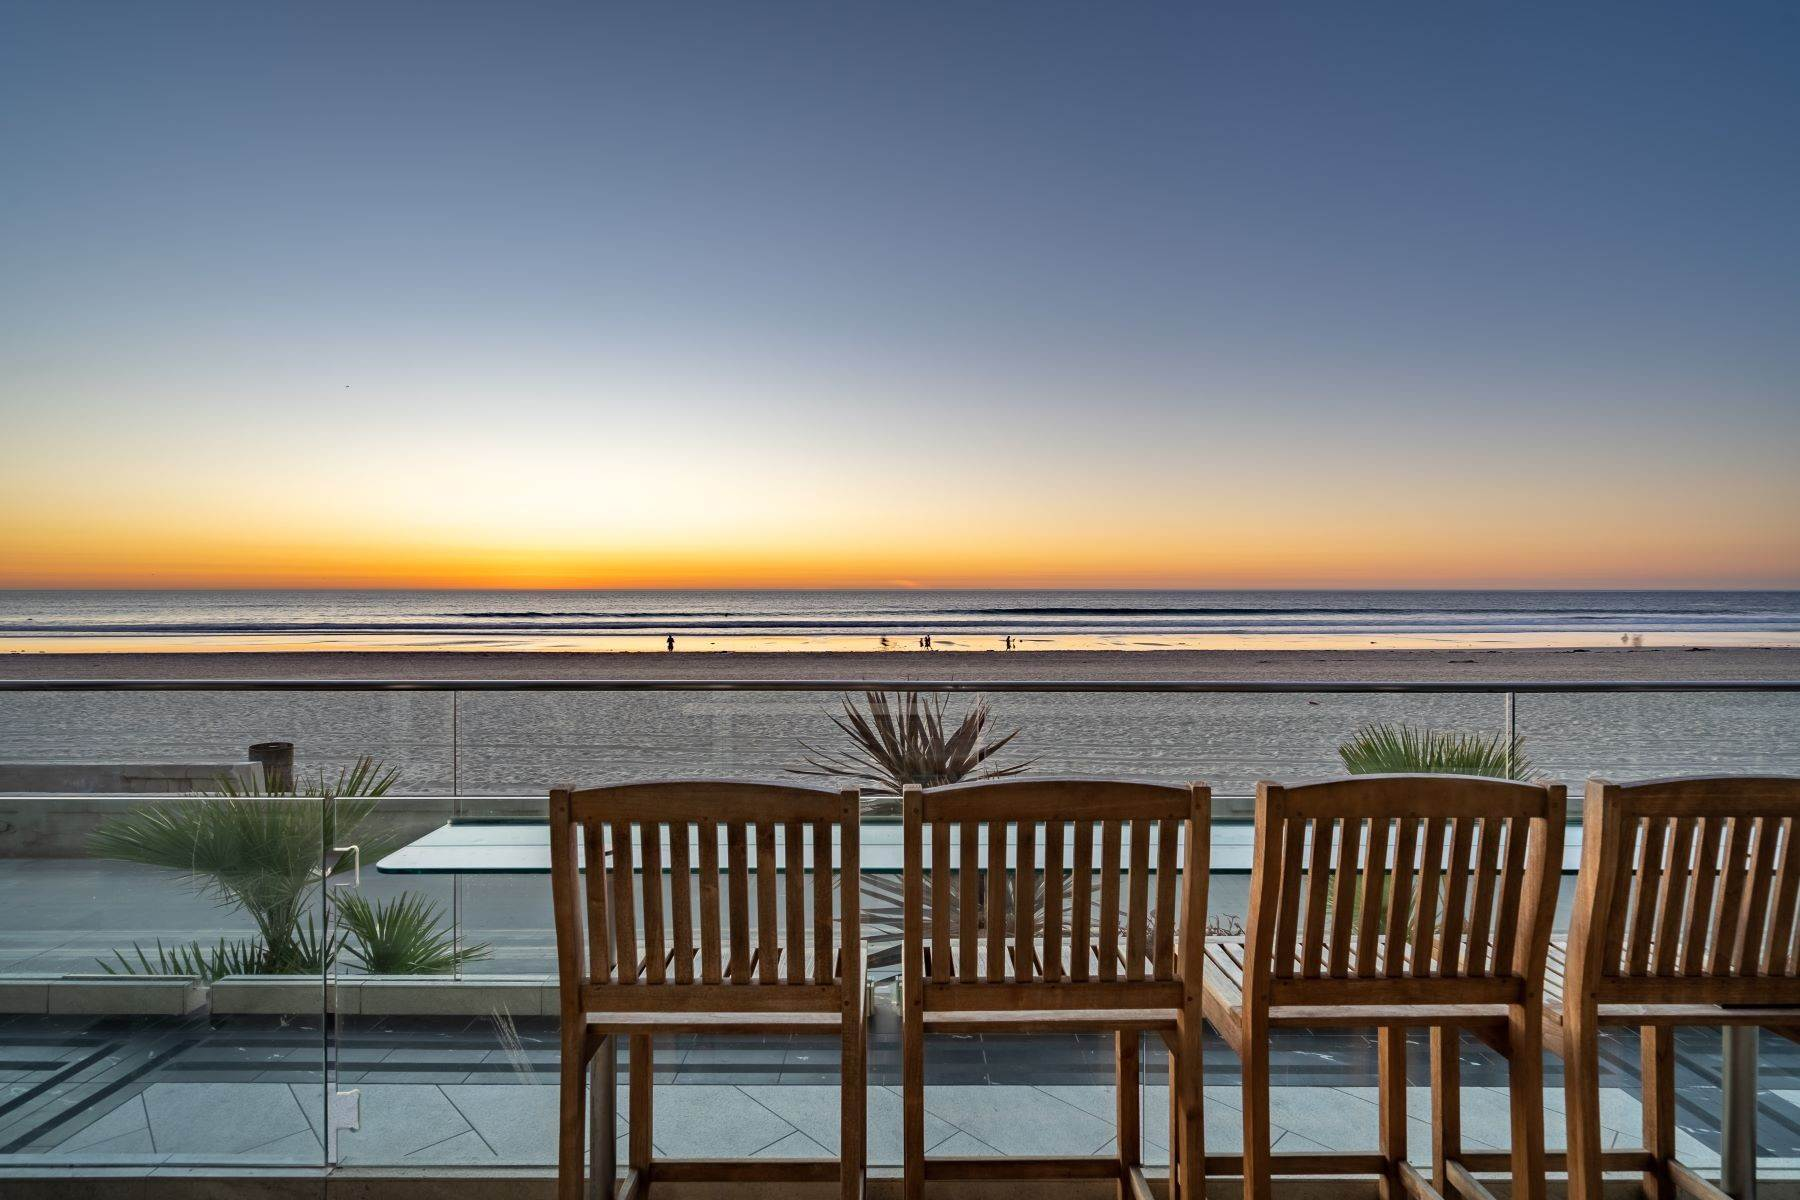 Condominiums for Sale at 3607 Ocean Front Walk, San Diego, CA 92109 3607 Ocean Front Walk San Diego, California 92109 United States